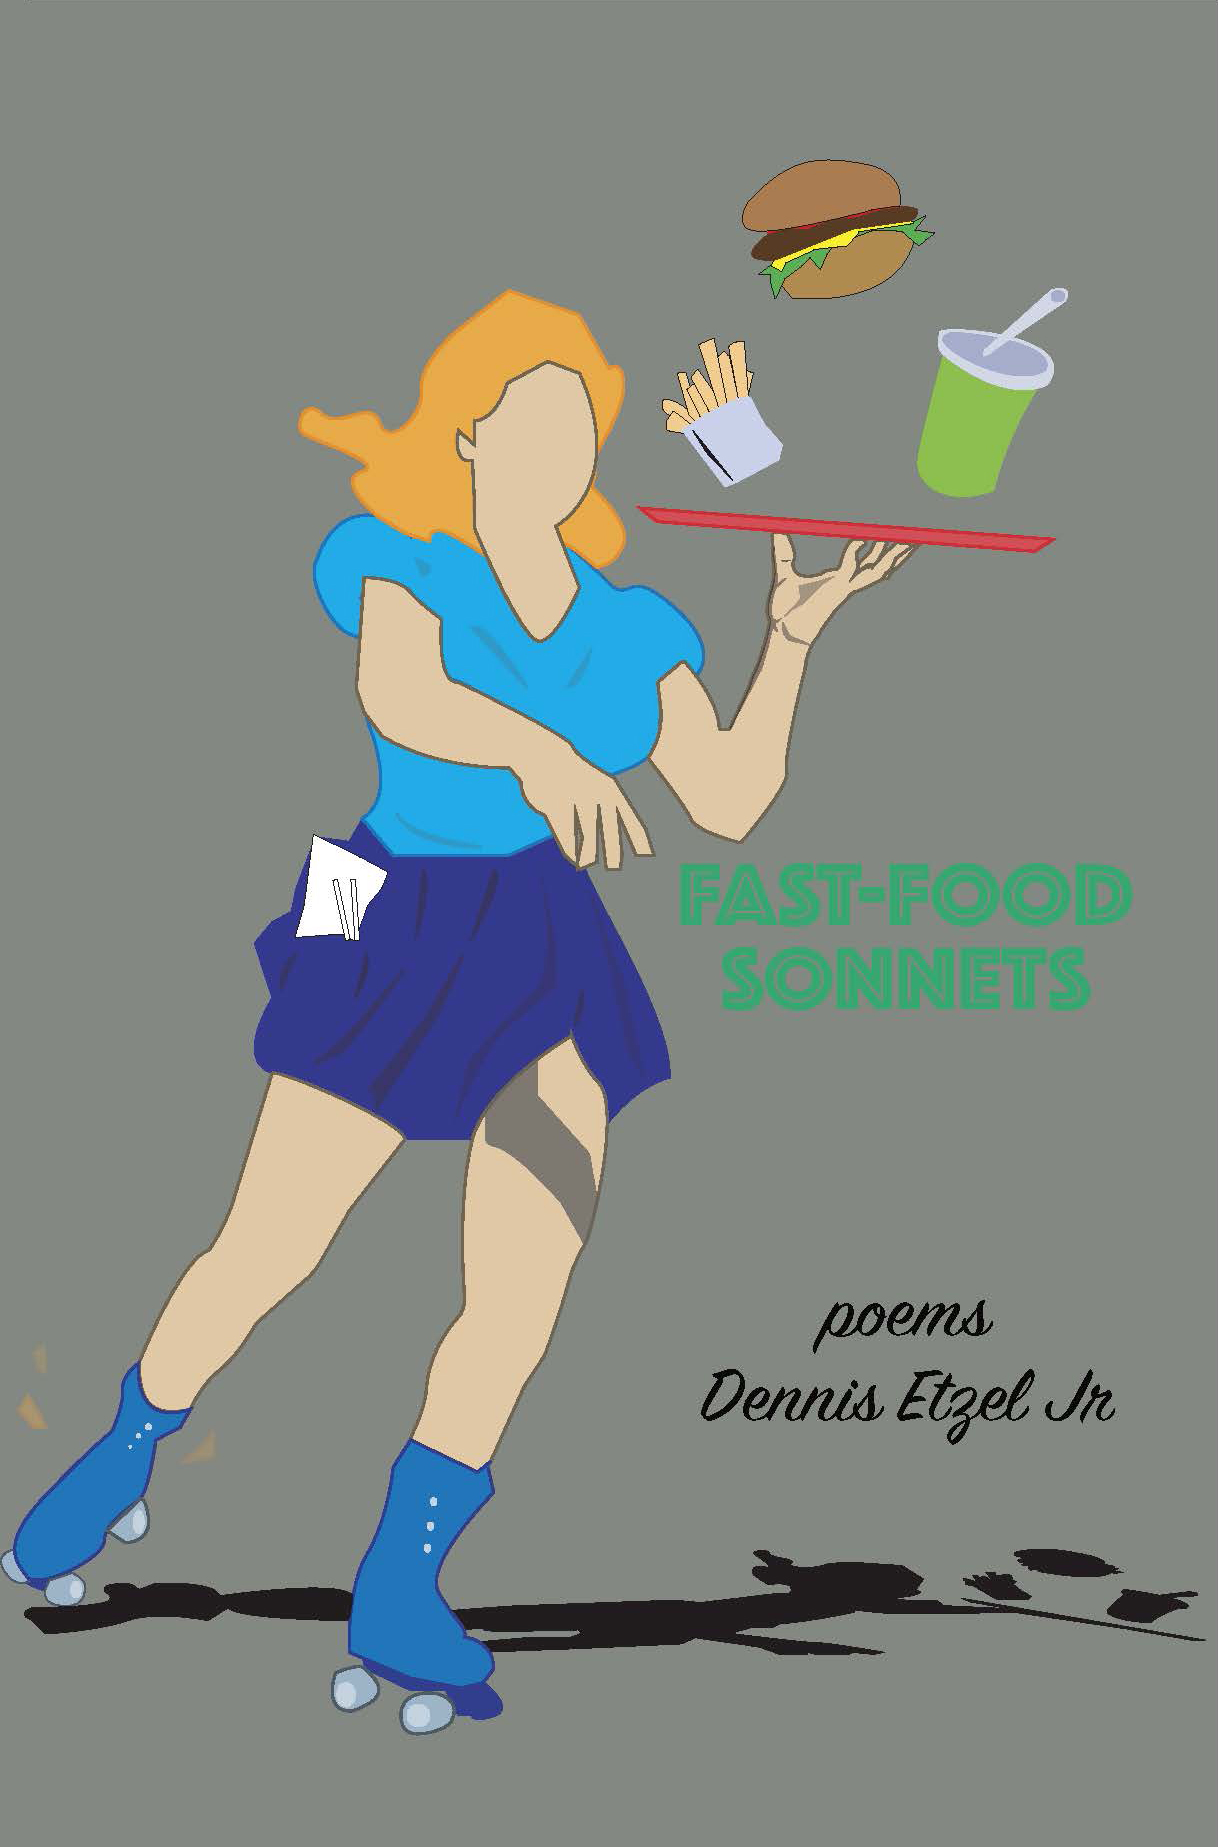 cover art for Fast Food Sonnets: poems by Dennis Etzel Jr